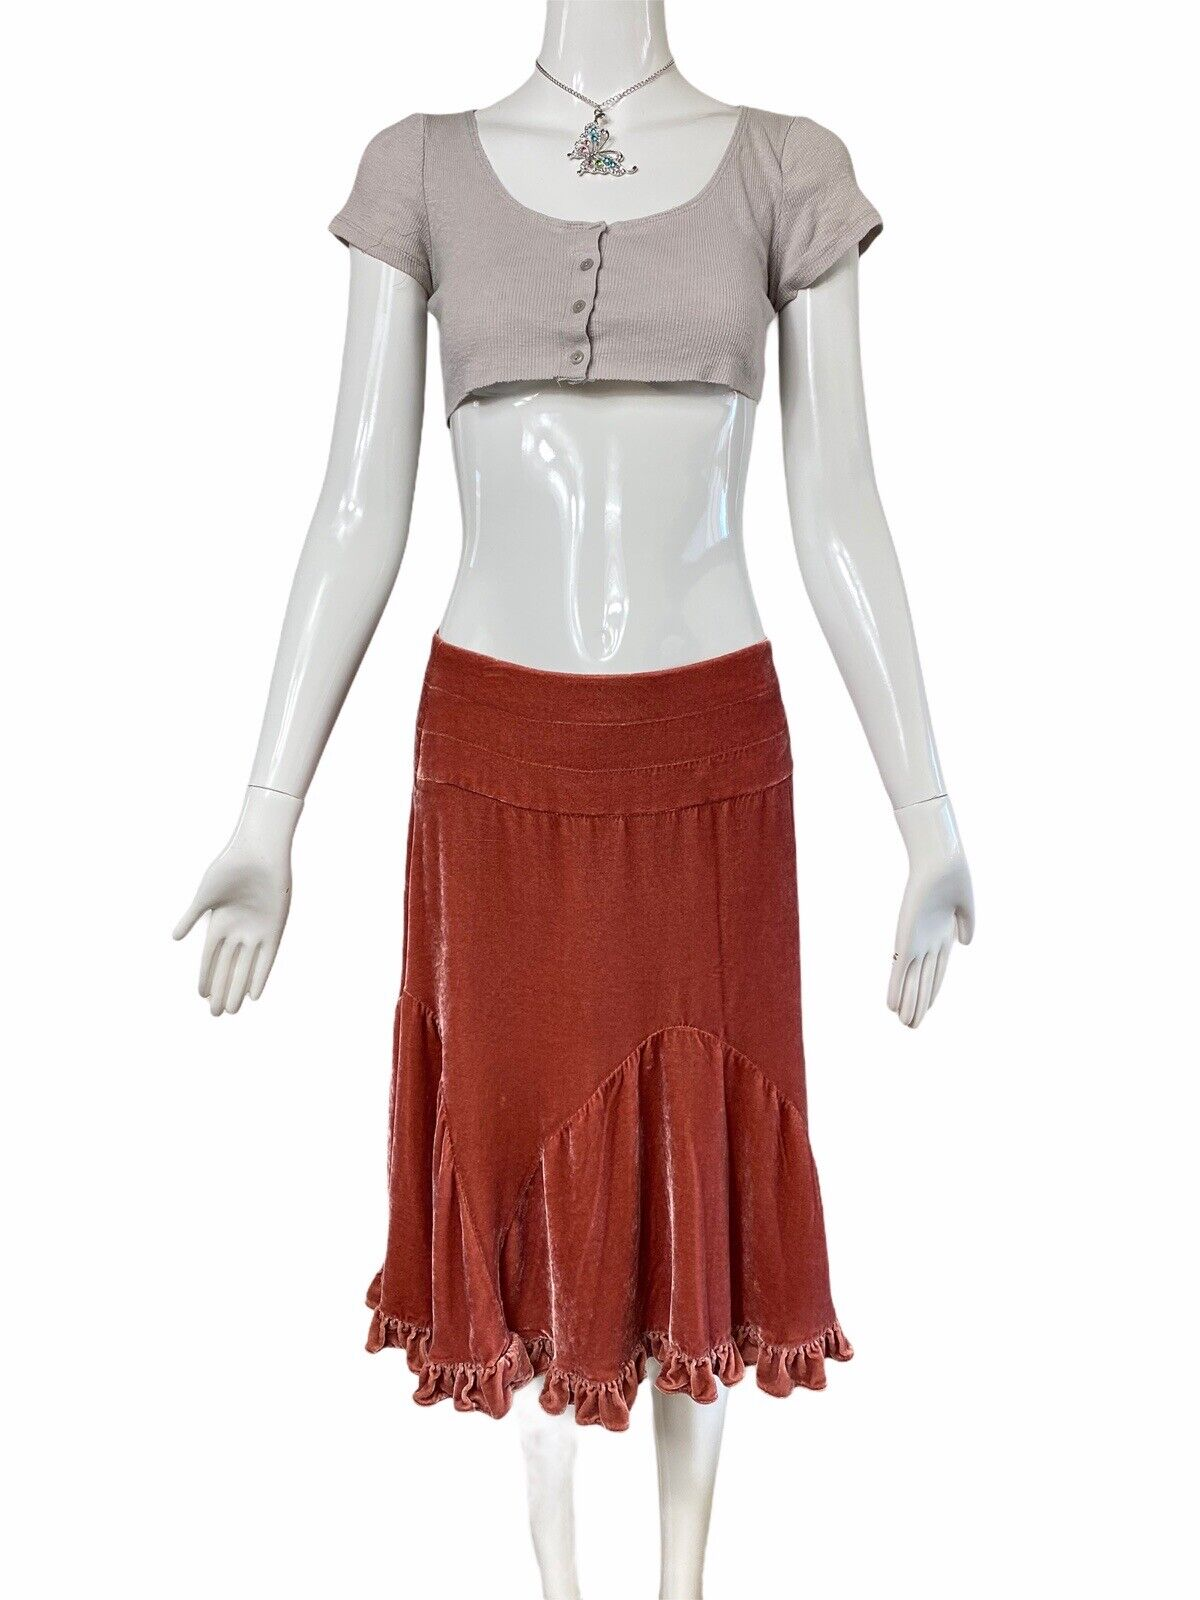 Fairycore Grunge Ribbed Crop Top Y2k 90s Aesthetic - image 3